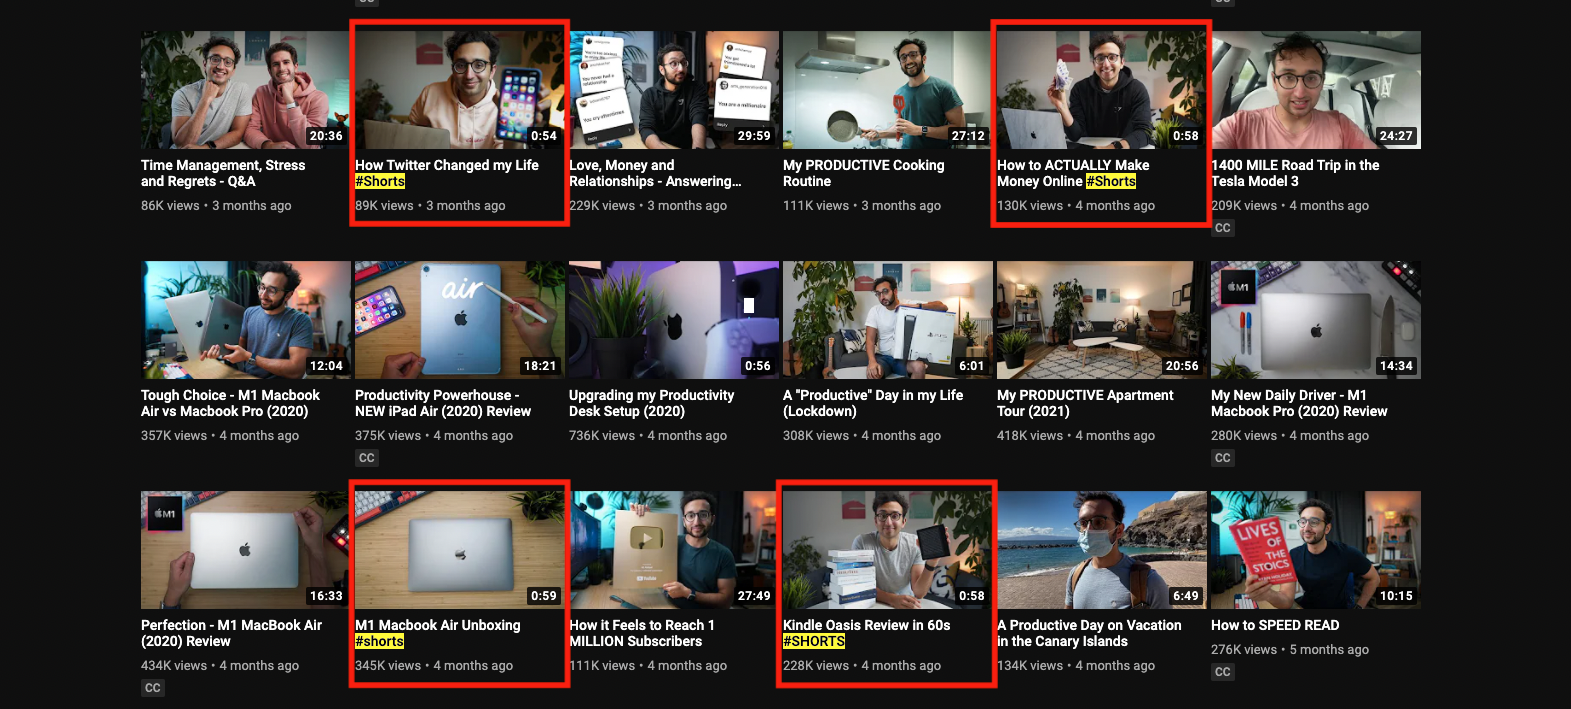 YouTube shorts content strategy example